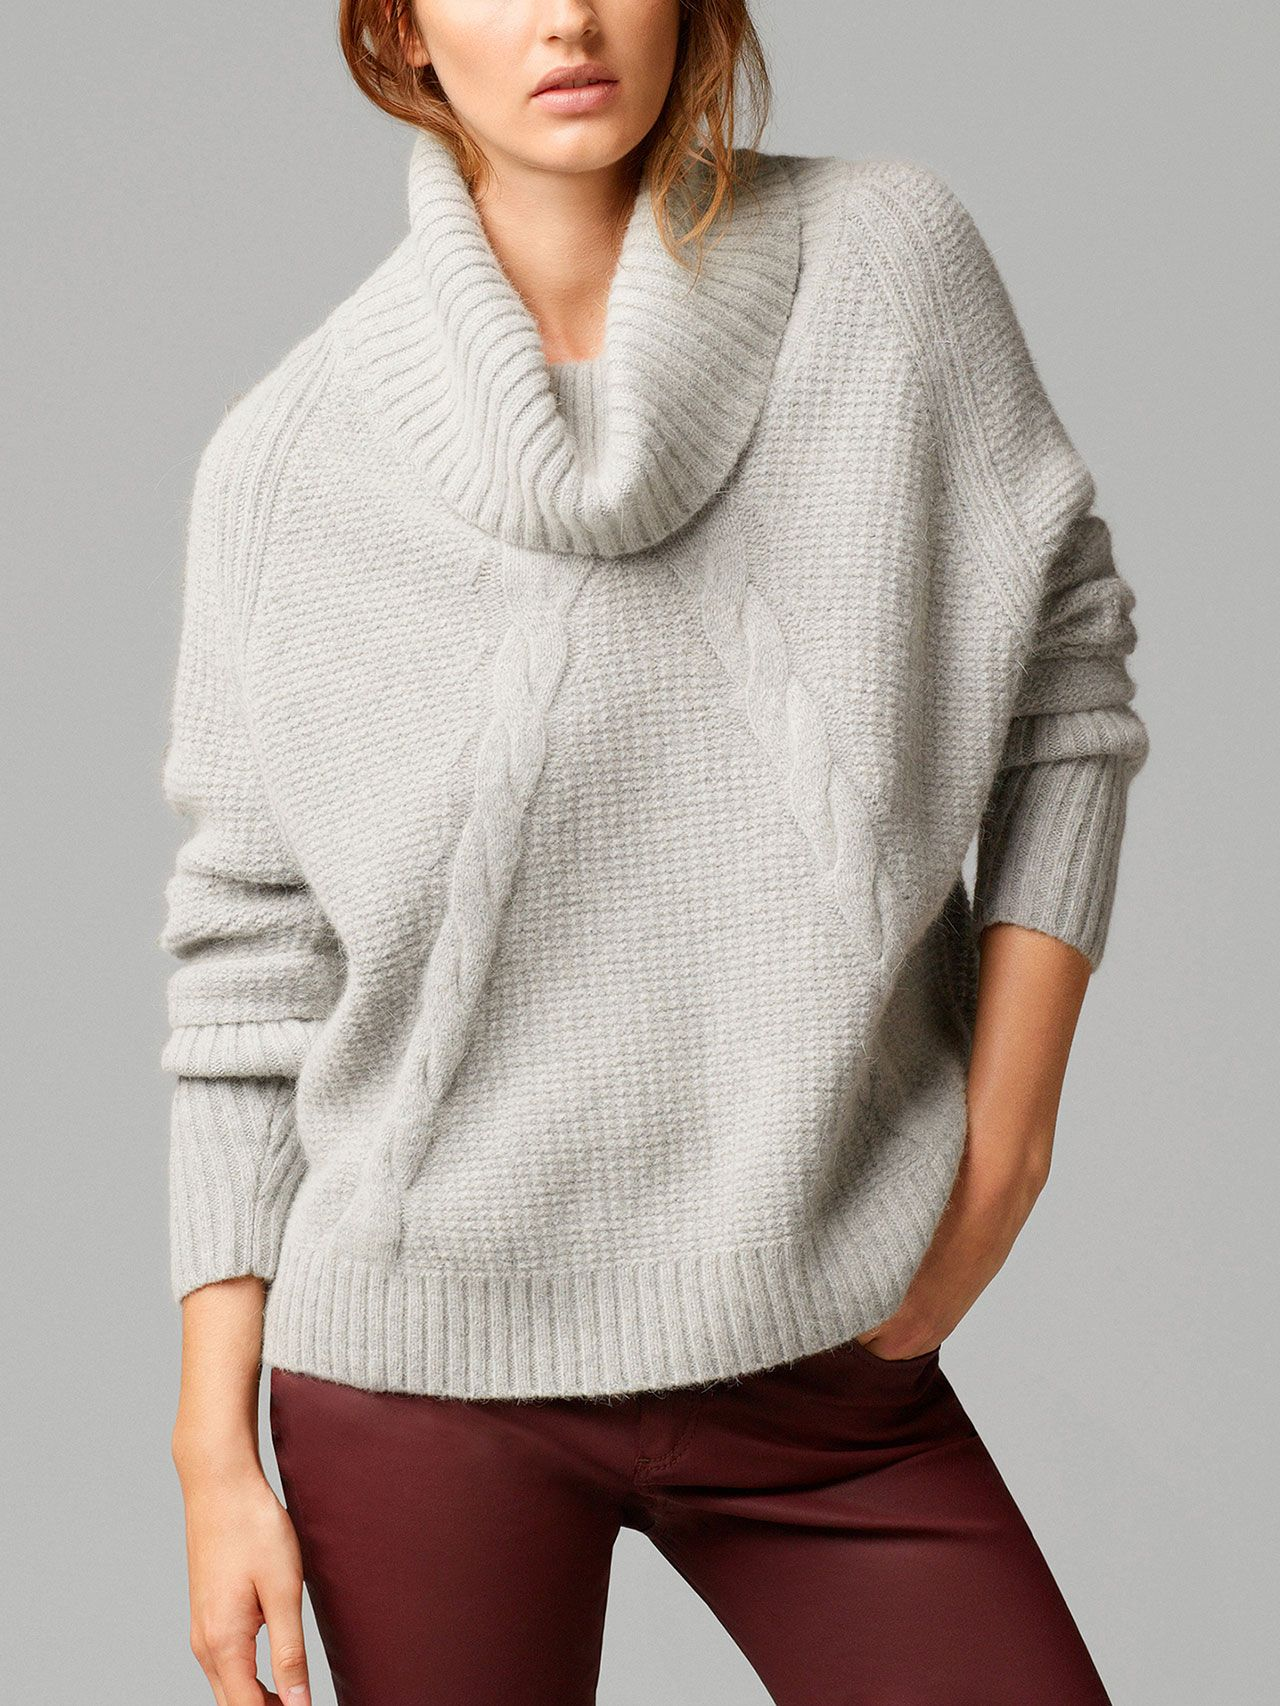 OVERSIZE CABLE-KNIT SWEATER by Massimo Dutti… | BONknitted ...